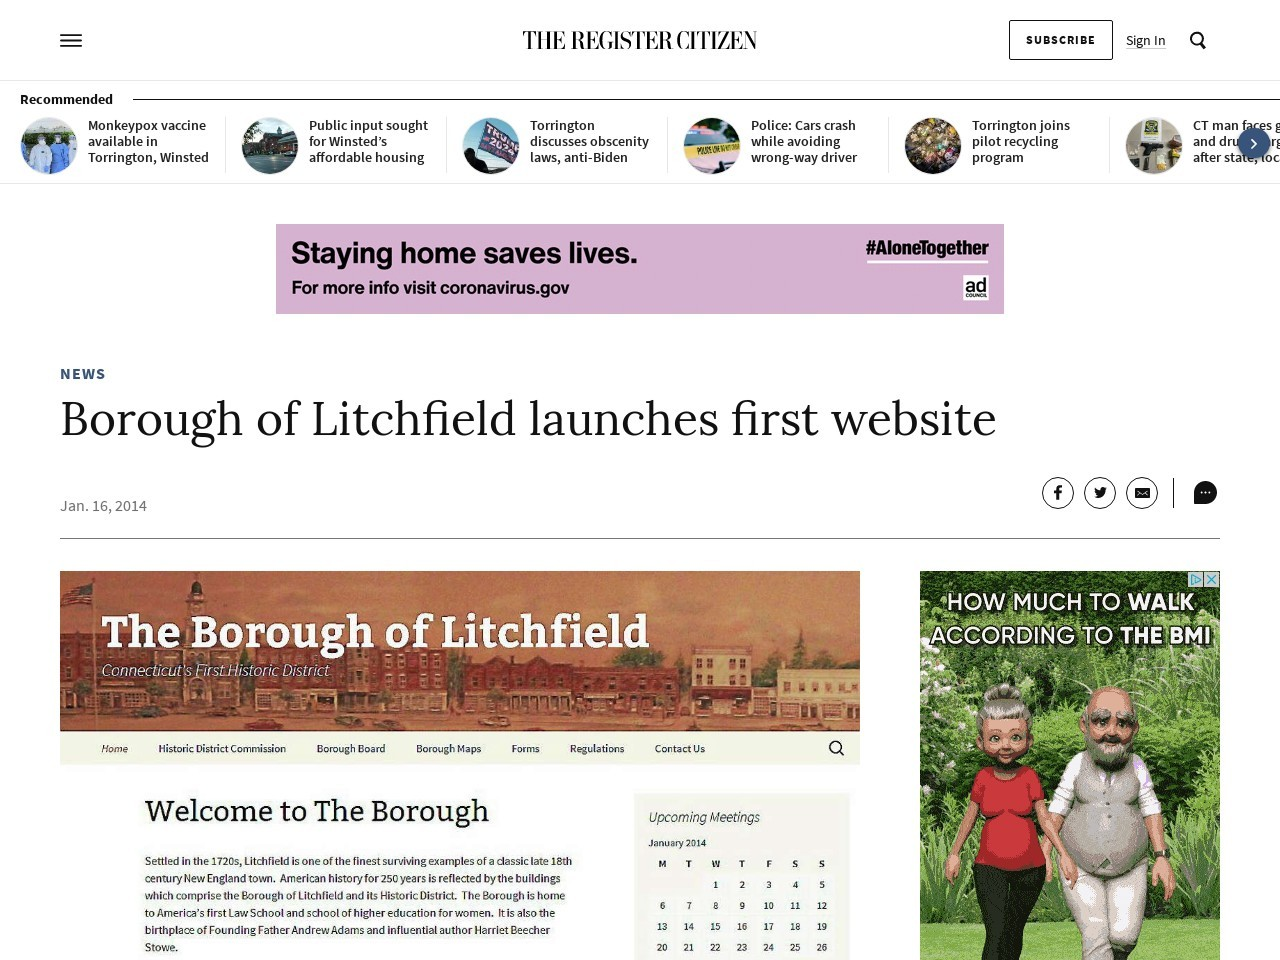 Borough of Litchfield launches first website